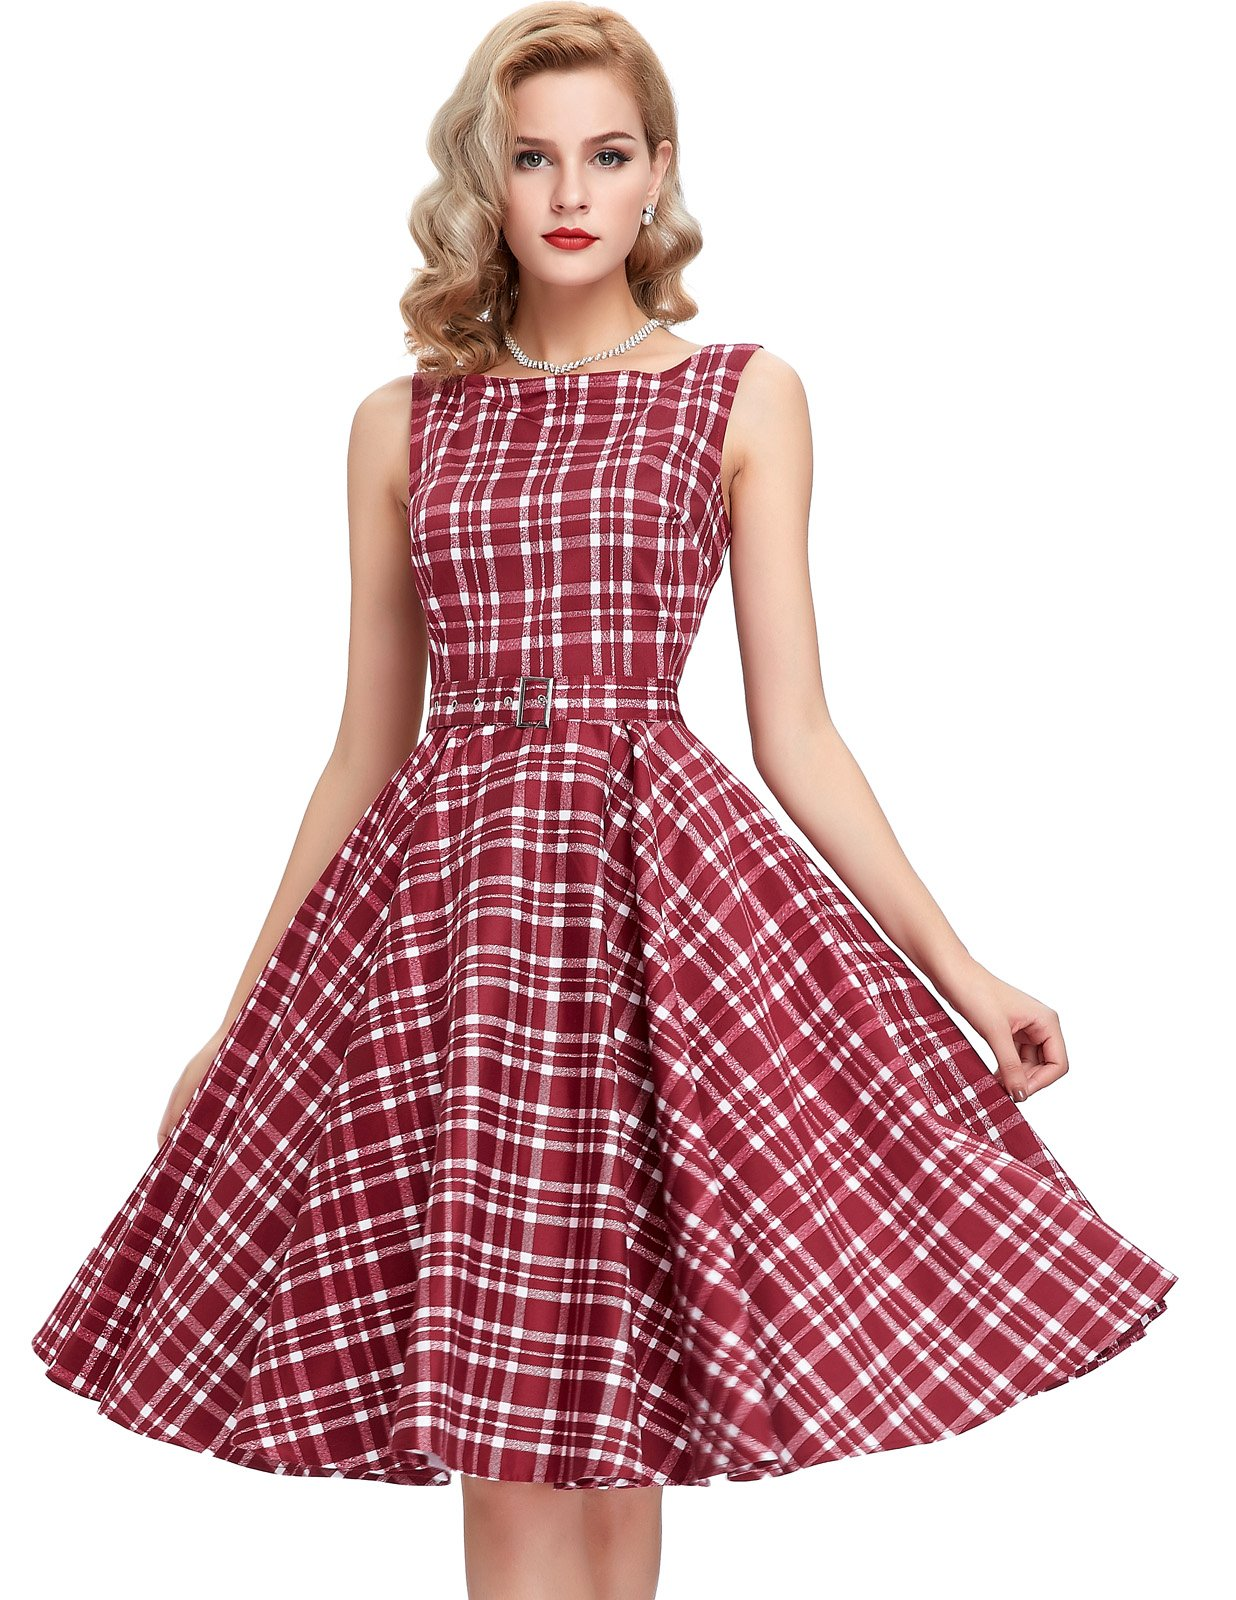 Belle Poque Red Plaid 2018 New Homecoming Dress Tea Length M BP02